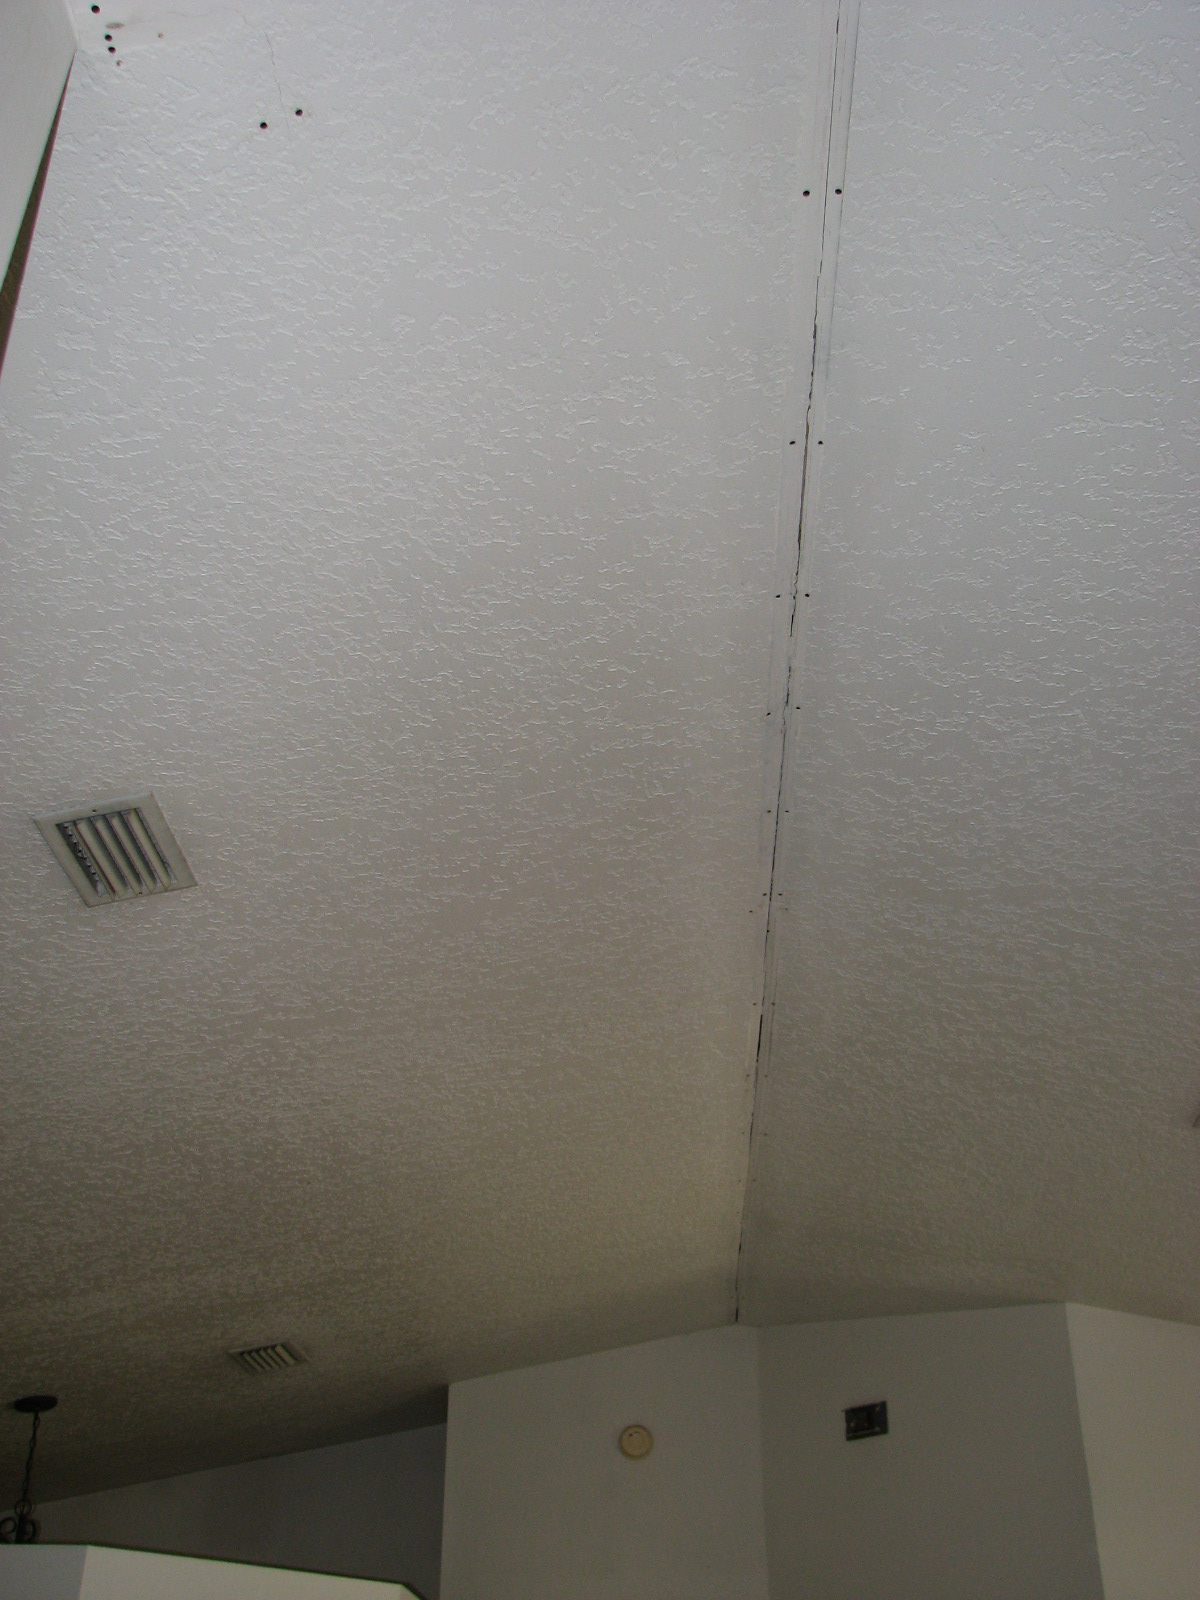 Vaulted ceiling tape joint repair by peck drywall and painting for Interior stucco ceiling repair